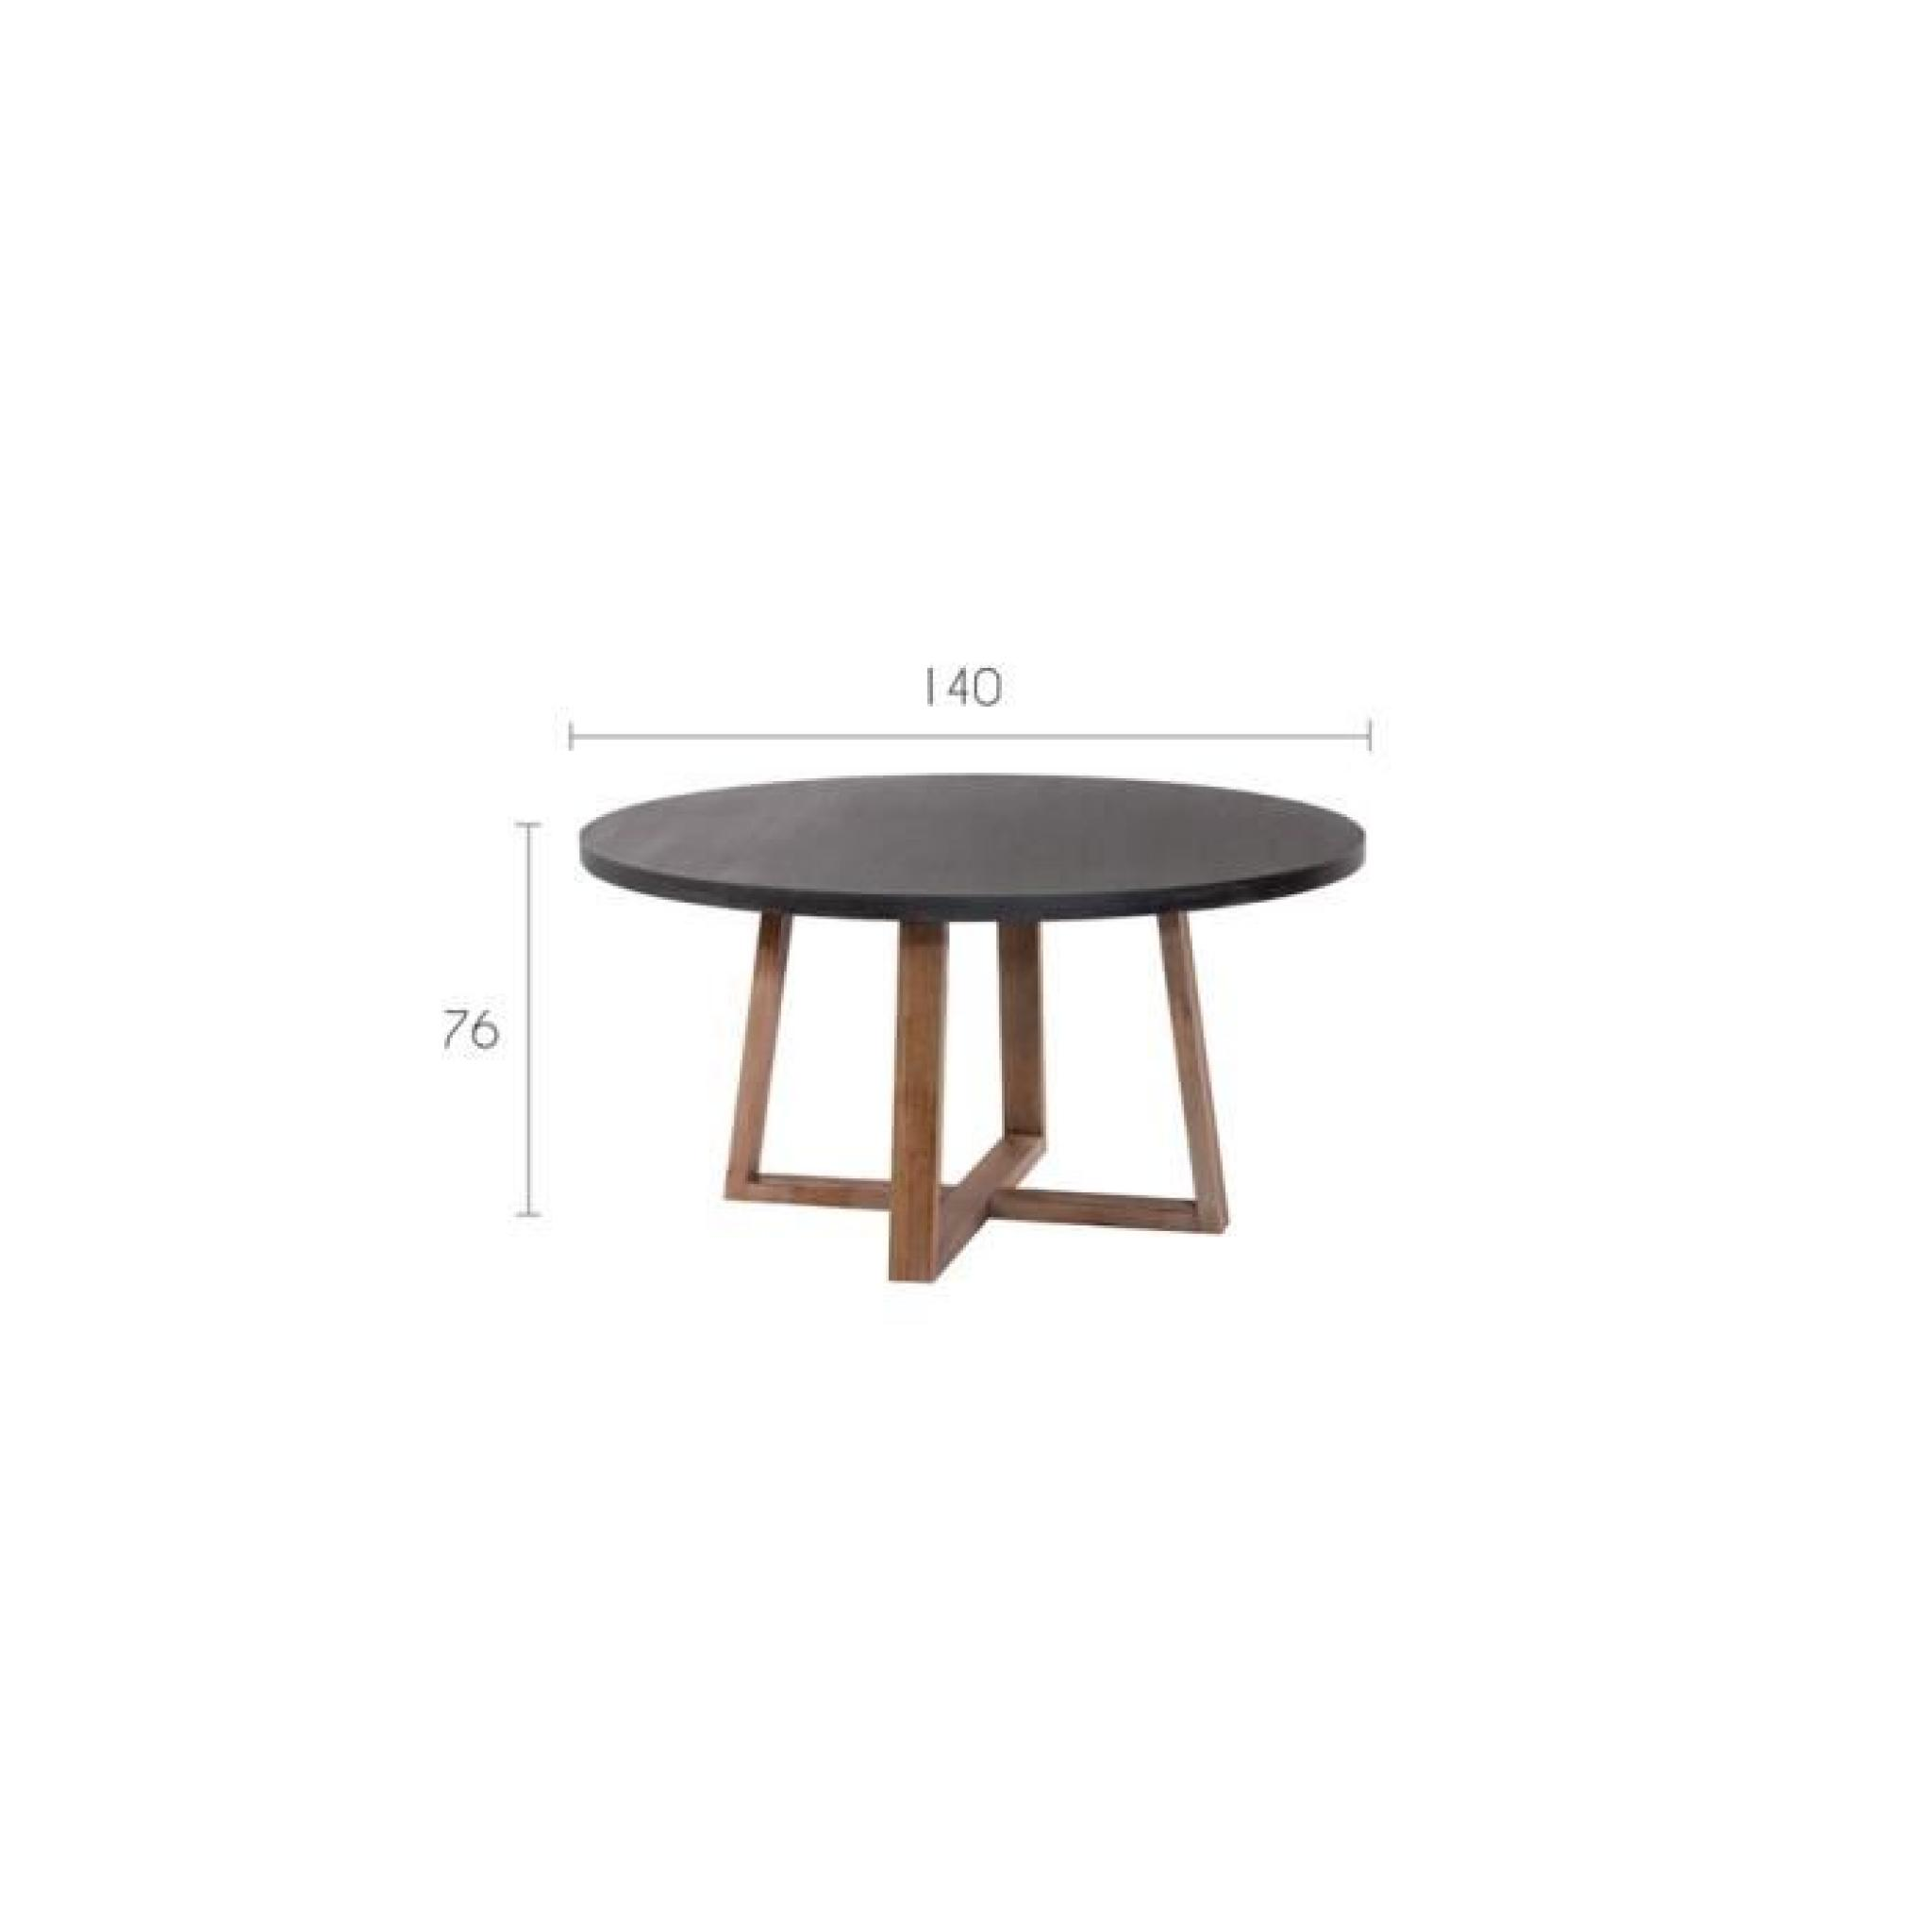 Table manger pas cher maison design for Achat table salle a manger